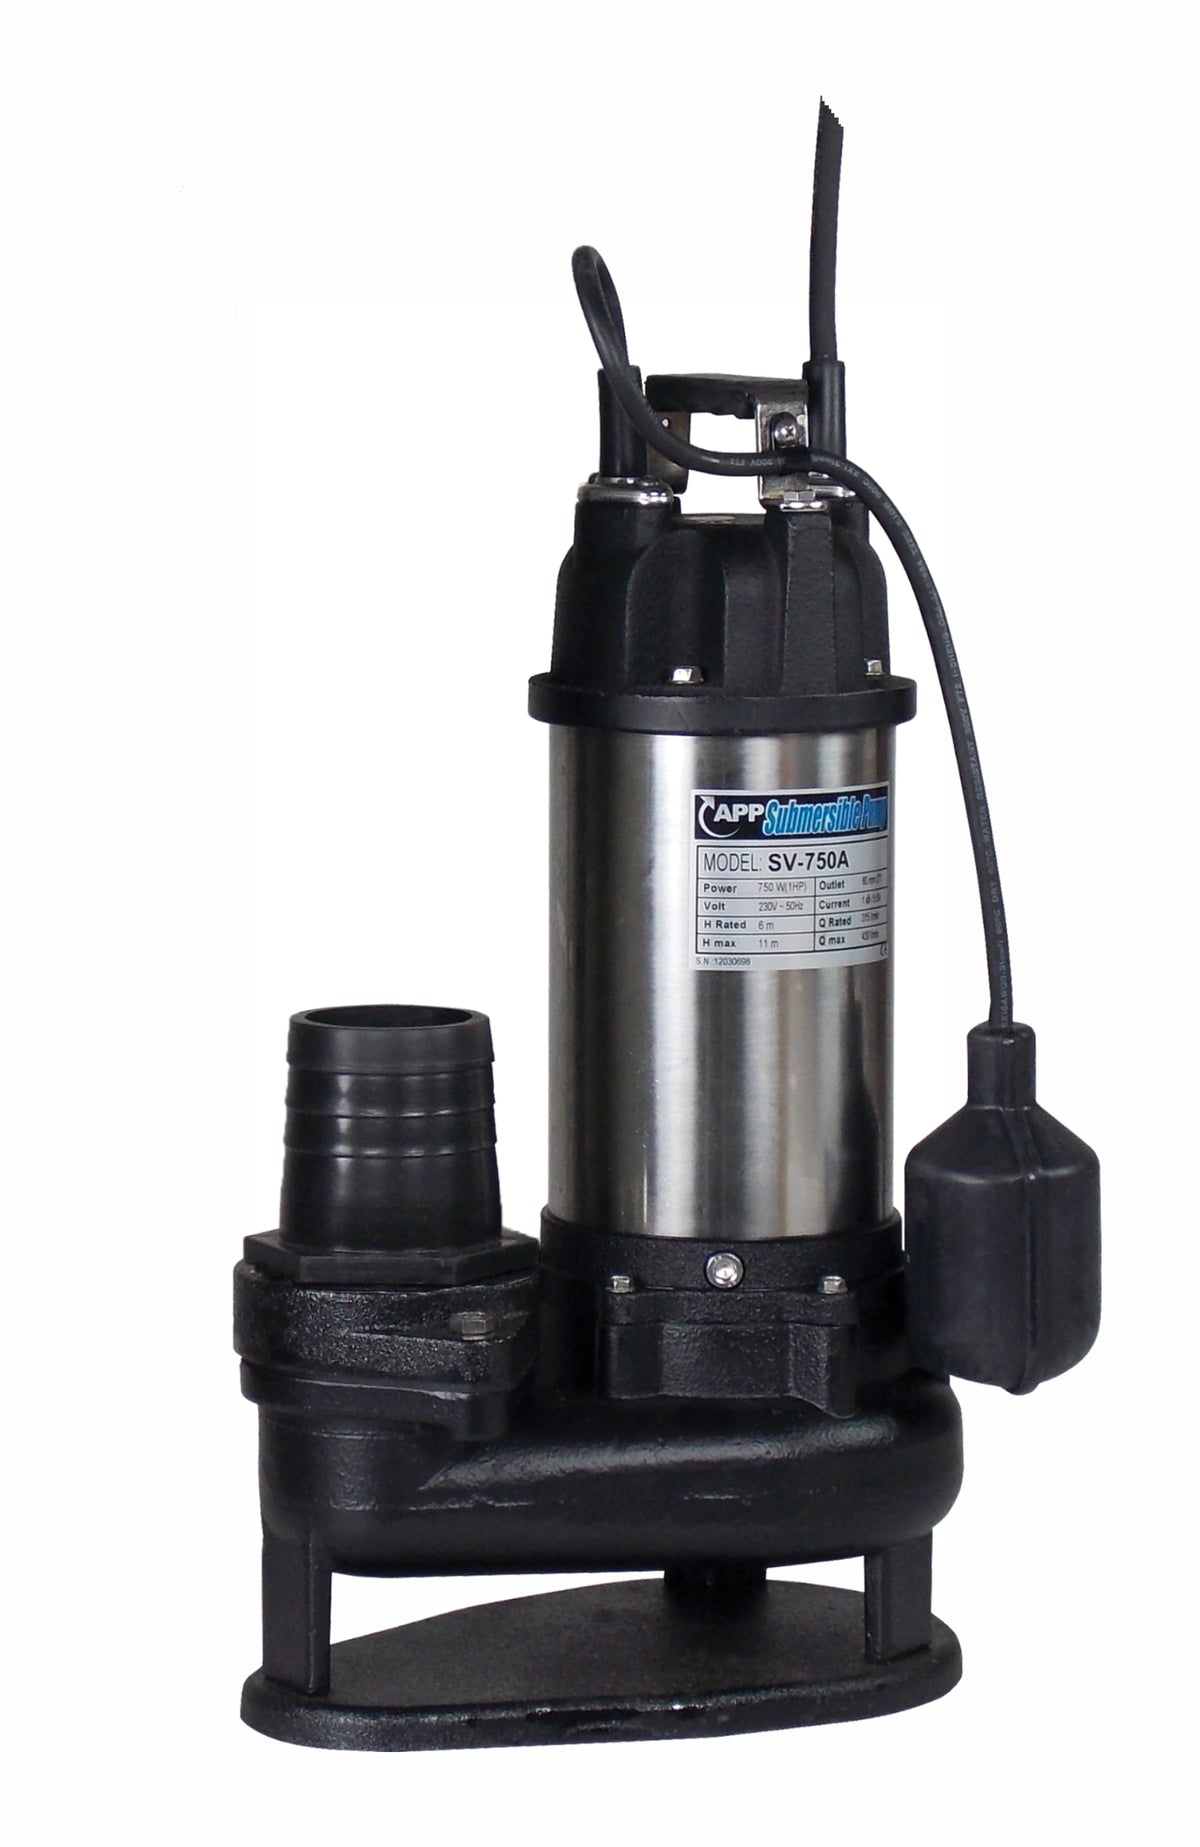 SV-750A Automatic Portable Submersible Pump